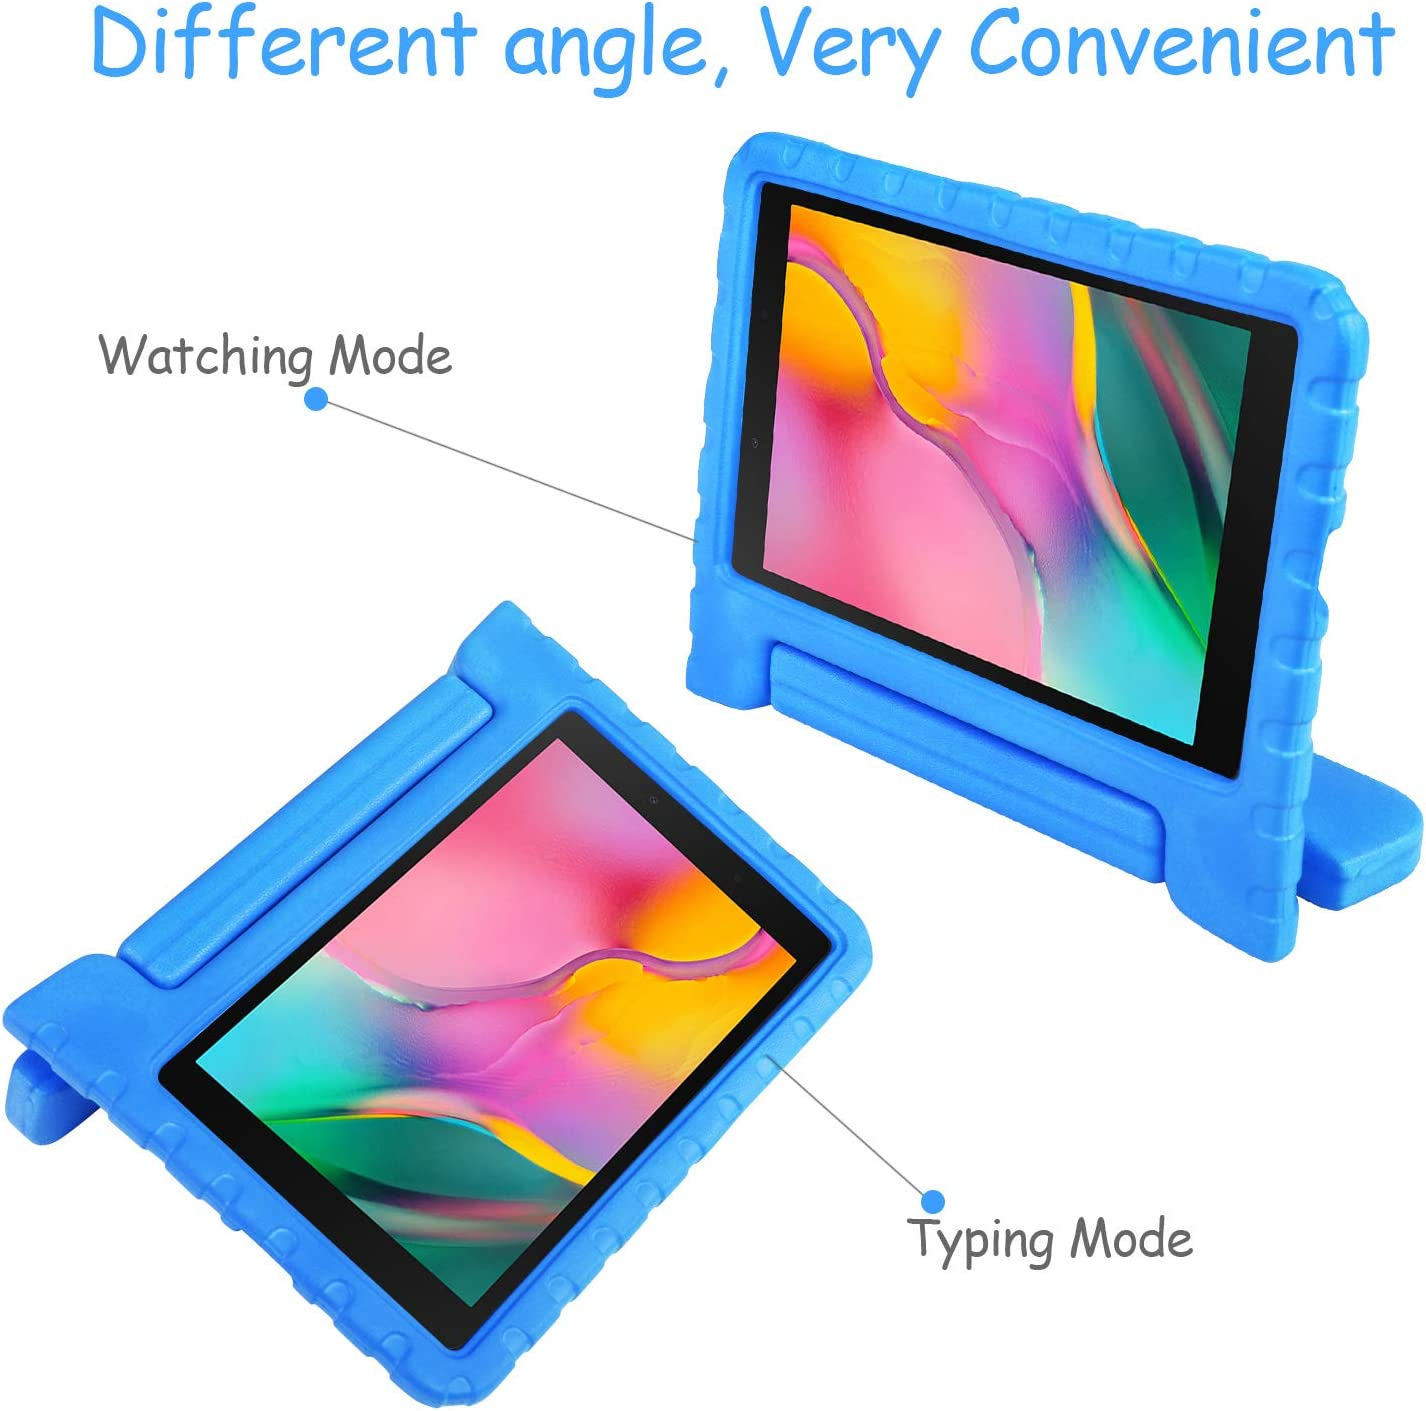 Bule NEWSTYLE Kids Case for Samsung Galaxy Tab A 8.0 2019 SM-T290//T295 - Toddler Lightweight Shockproof Portable Handle Stand Kids Case for Tab A 8.0 Inch 2019 SM-P290//P295 Release